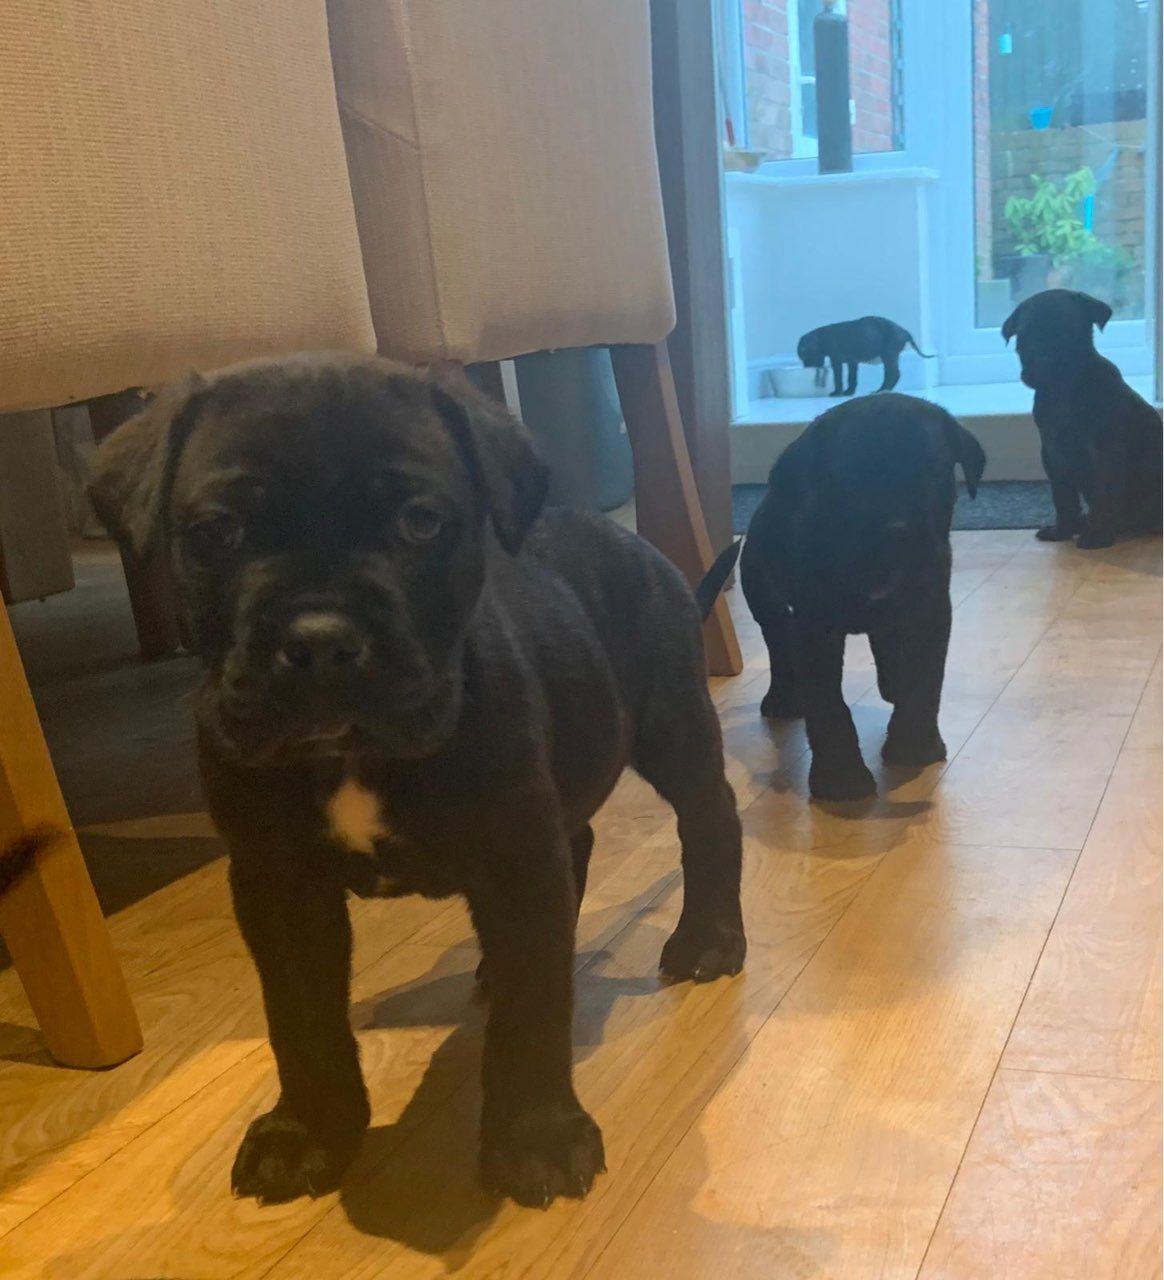 Kuwait Dogs And Puppies Adoption And Sales Email Us At Khaleelsalafi Hotmail Com Cane Corso Puppies Puppies Cane Corso Puppies Puppy Adoption Puppies For Sale